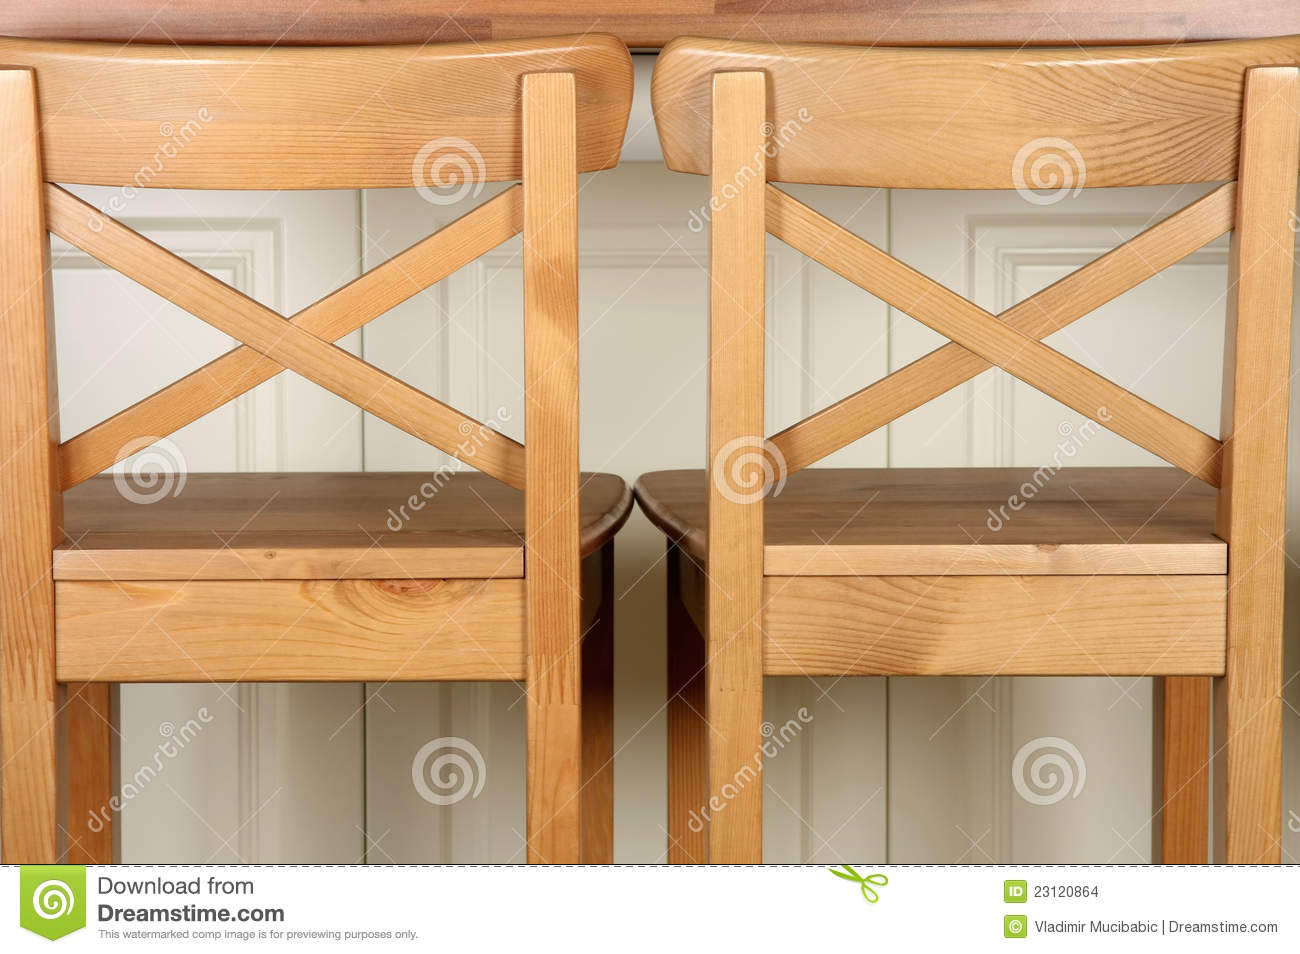 Royalty-Free Stock Photo. Download Wooden Bar Stool And Kitchen Counter ... & Wooden Bar Stool And Kitchen Counter Stock Images - Image: 23120864 islam-shia.org